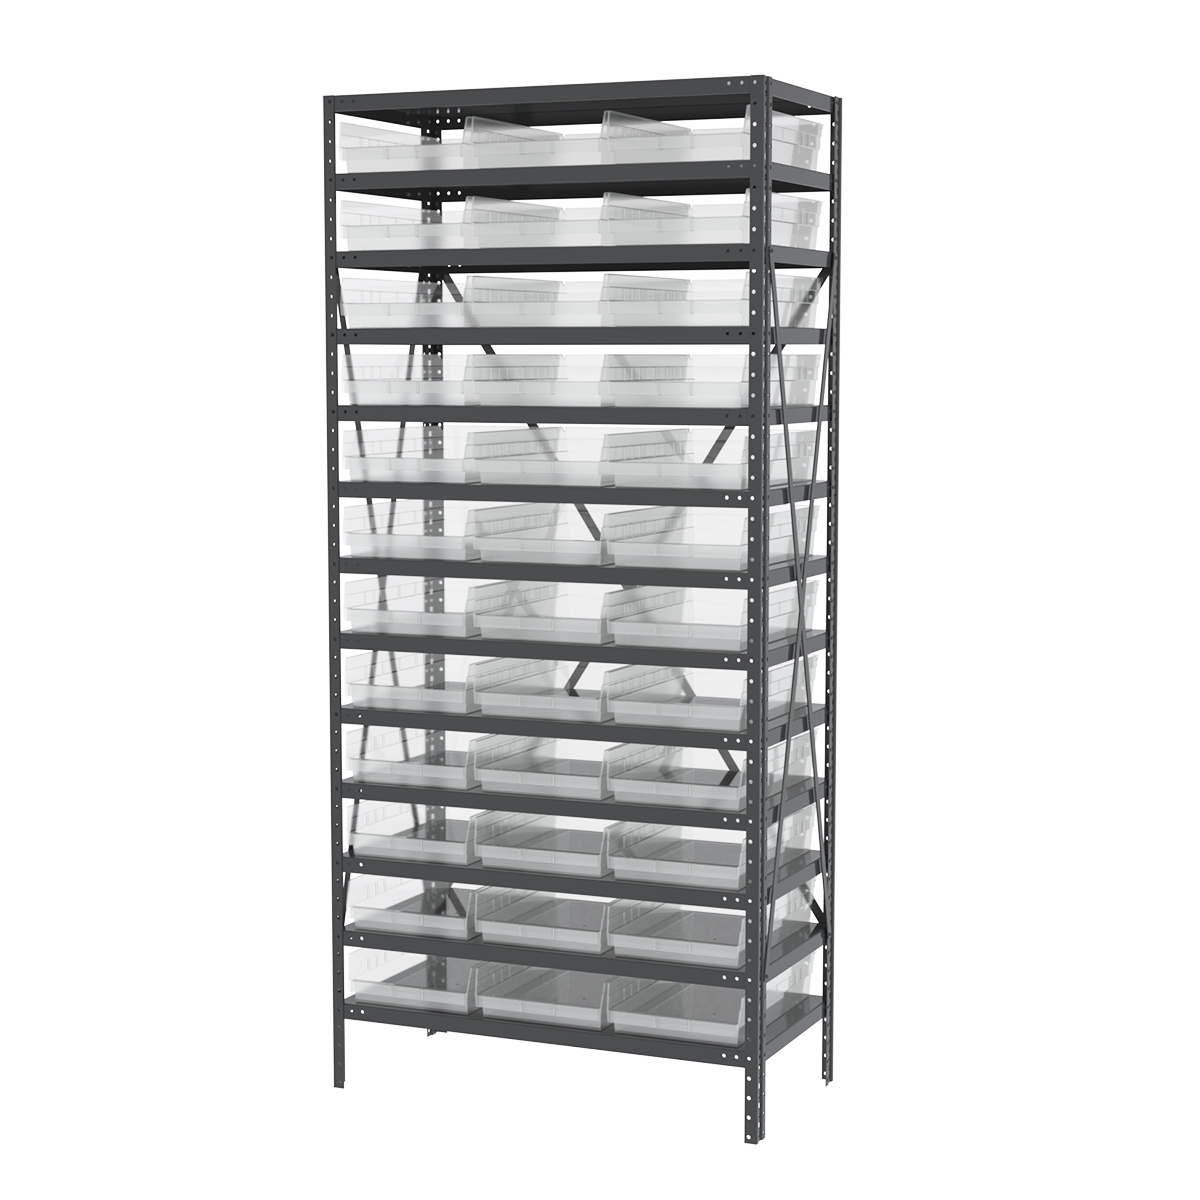 Steel Shelving Kit, 18x36x79, 36 Bins, Gray/Clear.  This item sold in carton quantities of 1.